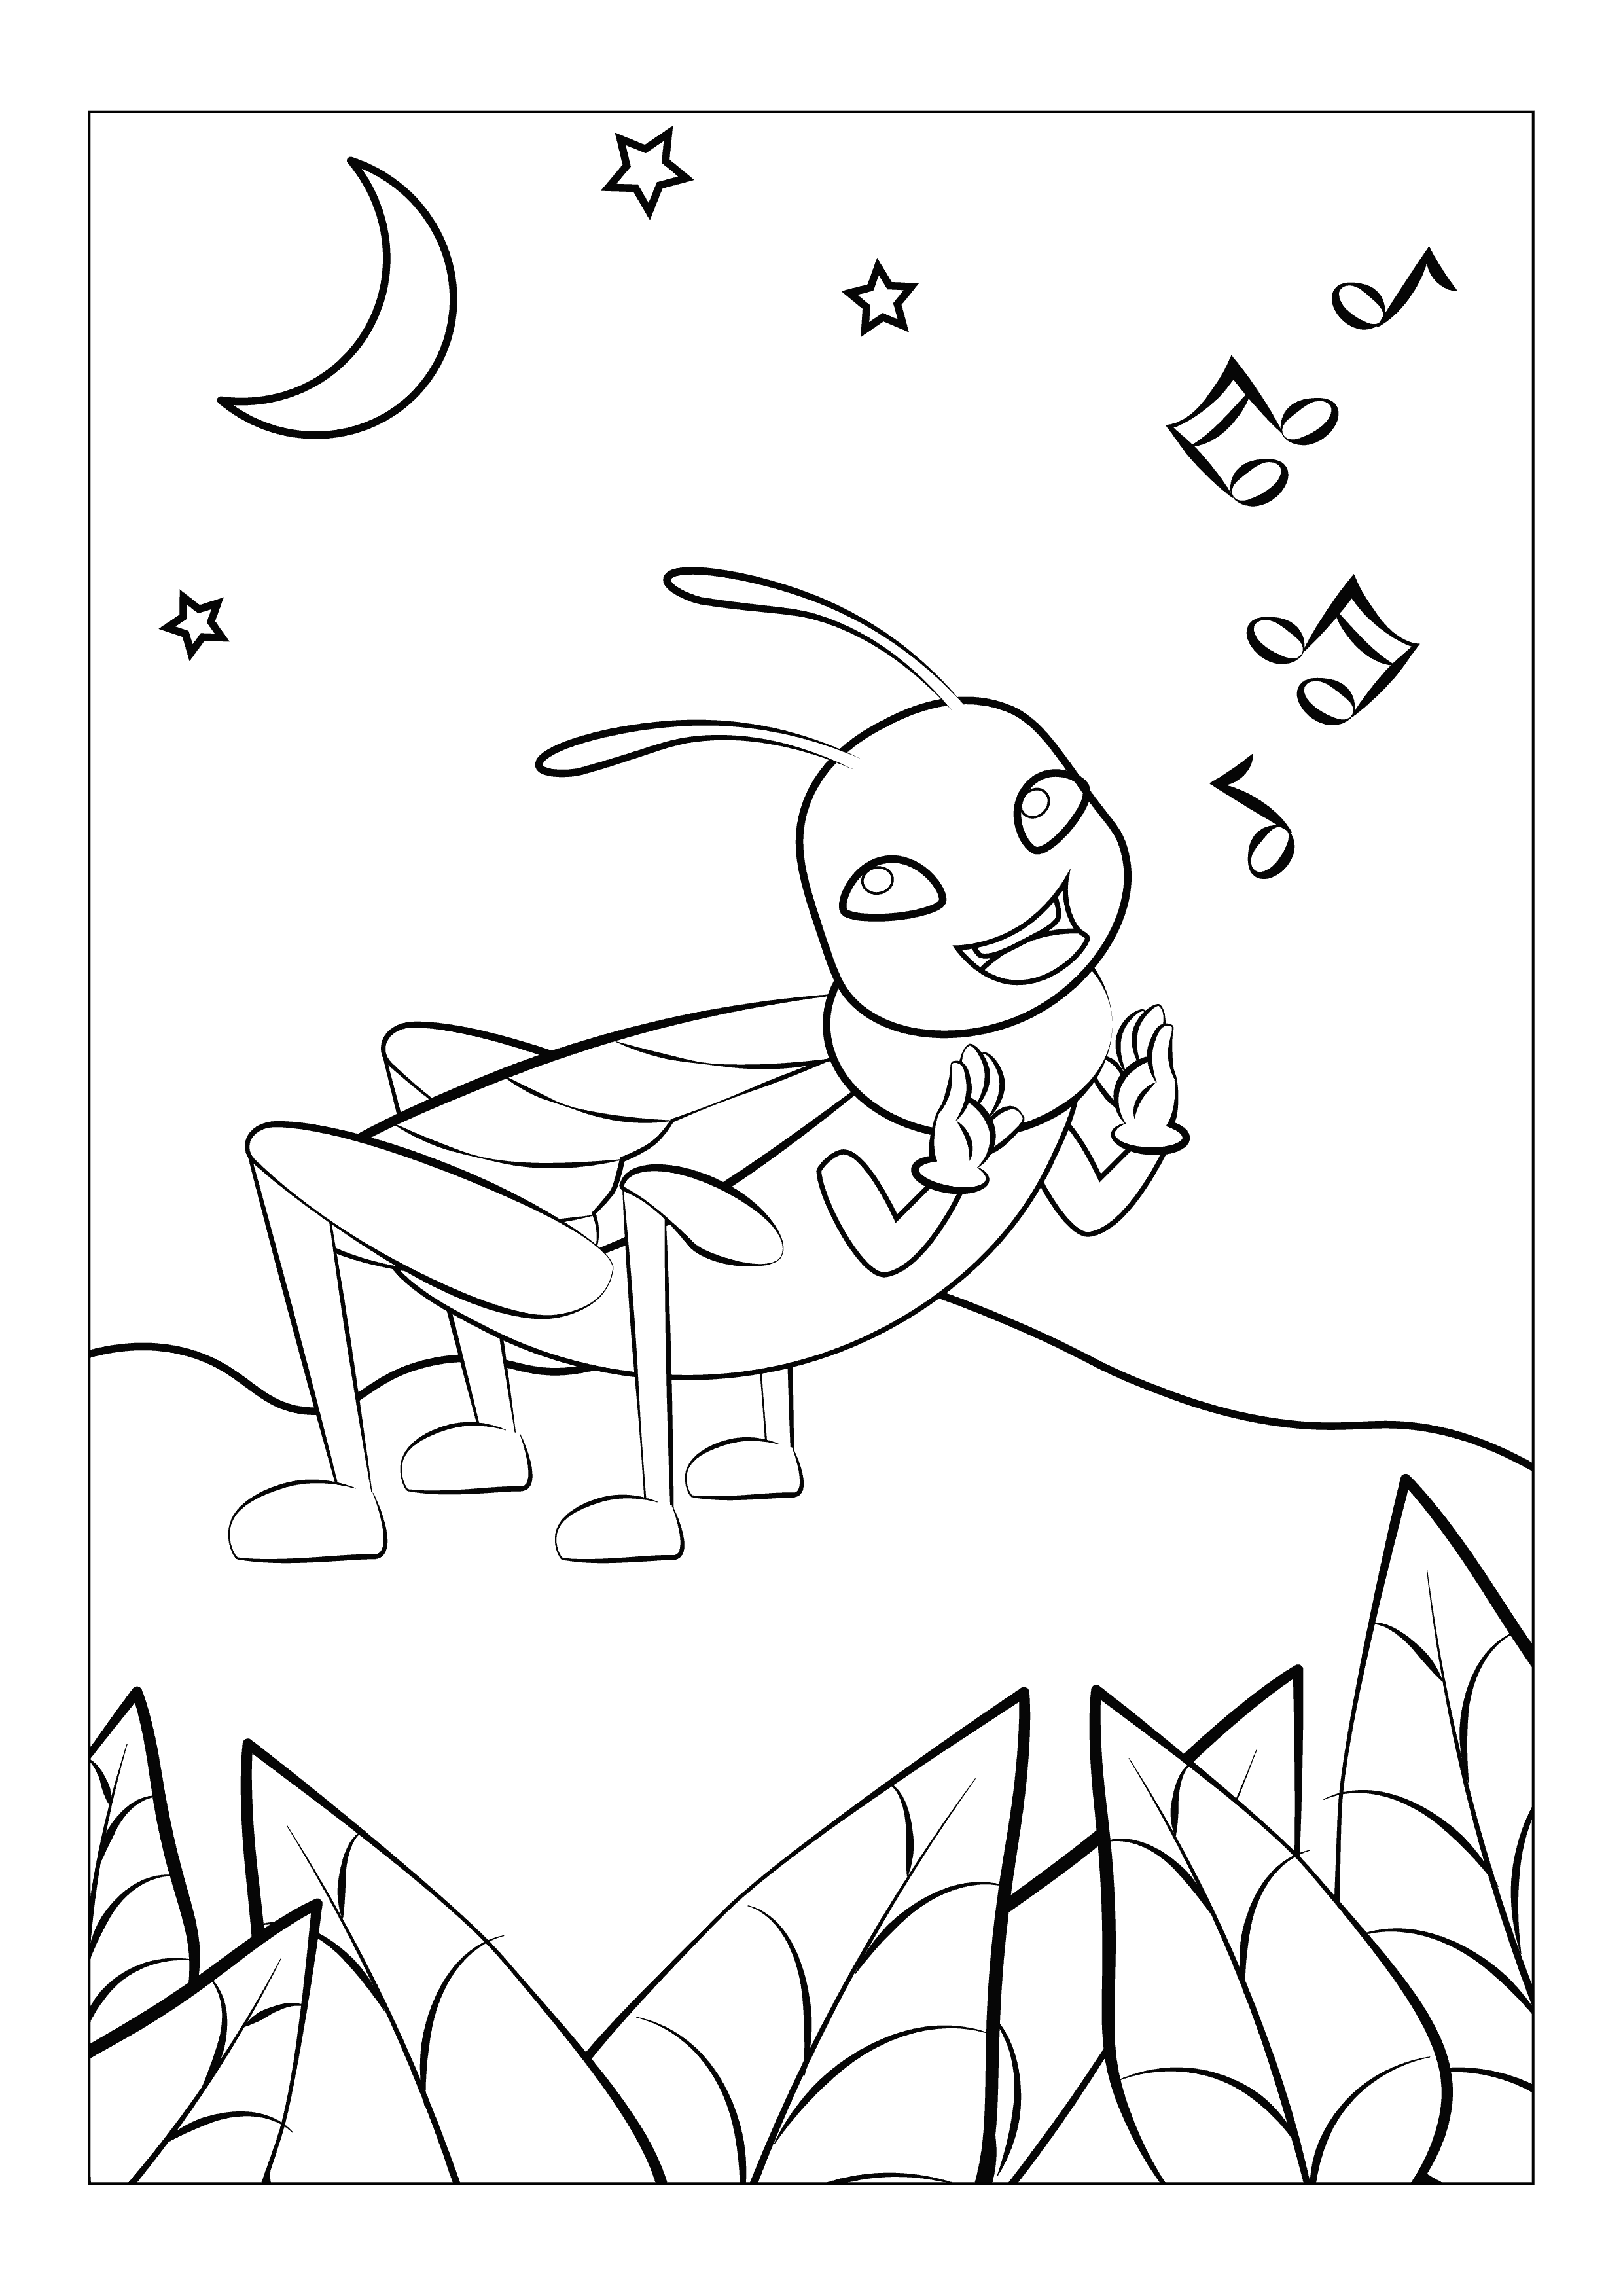 Free Online Coloring Pages With Super Cool Bugs